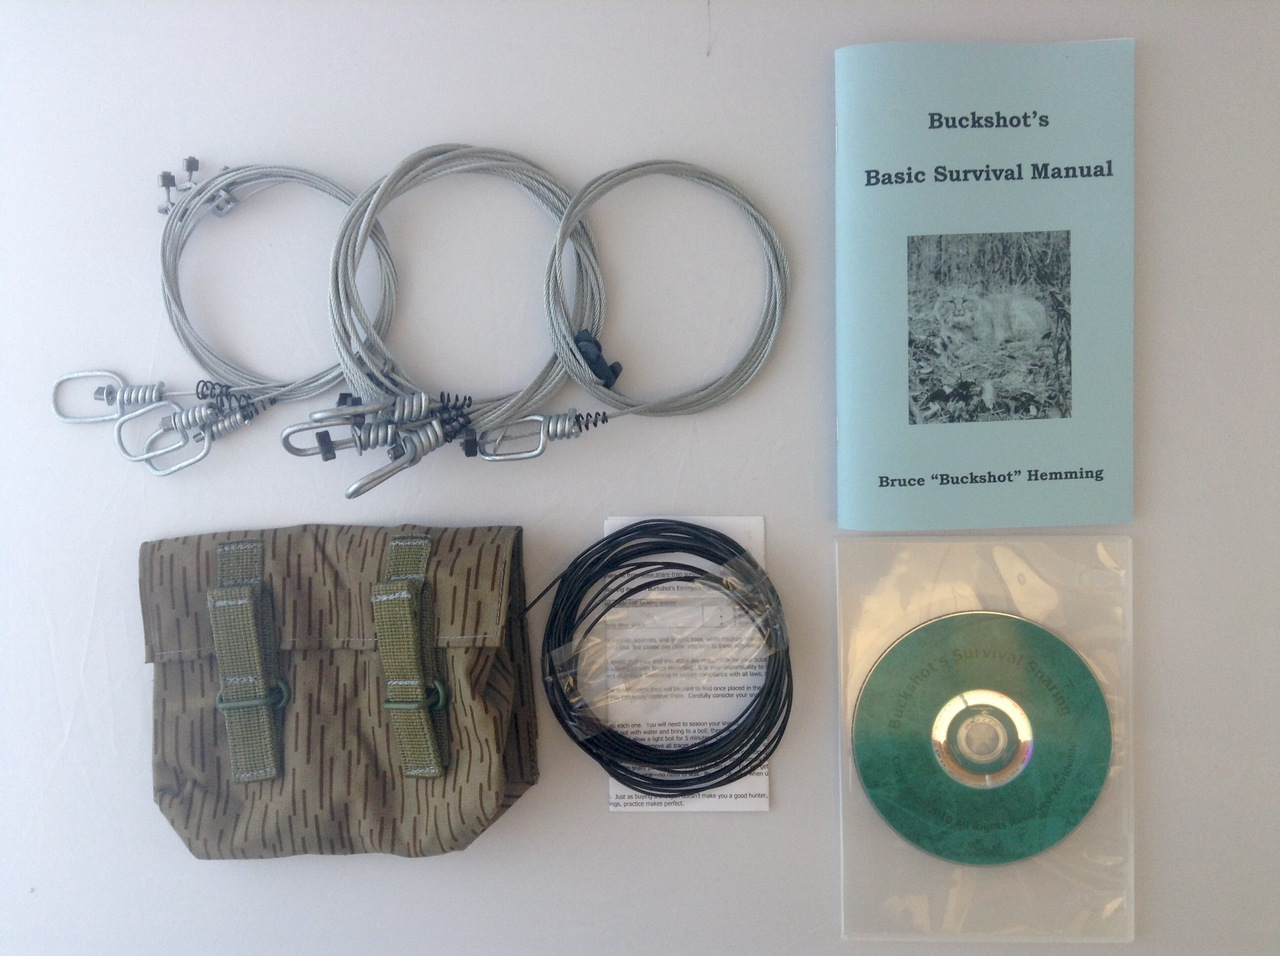 Buckshot's Small Snare Kit, Buckshot's Basic Survival Manual & Survival Snaring DVD